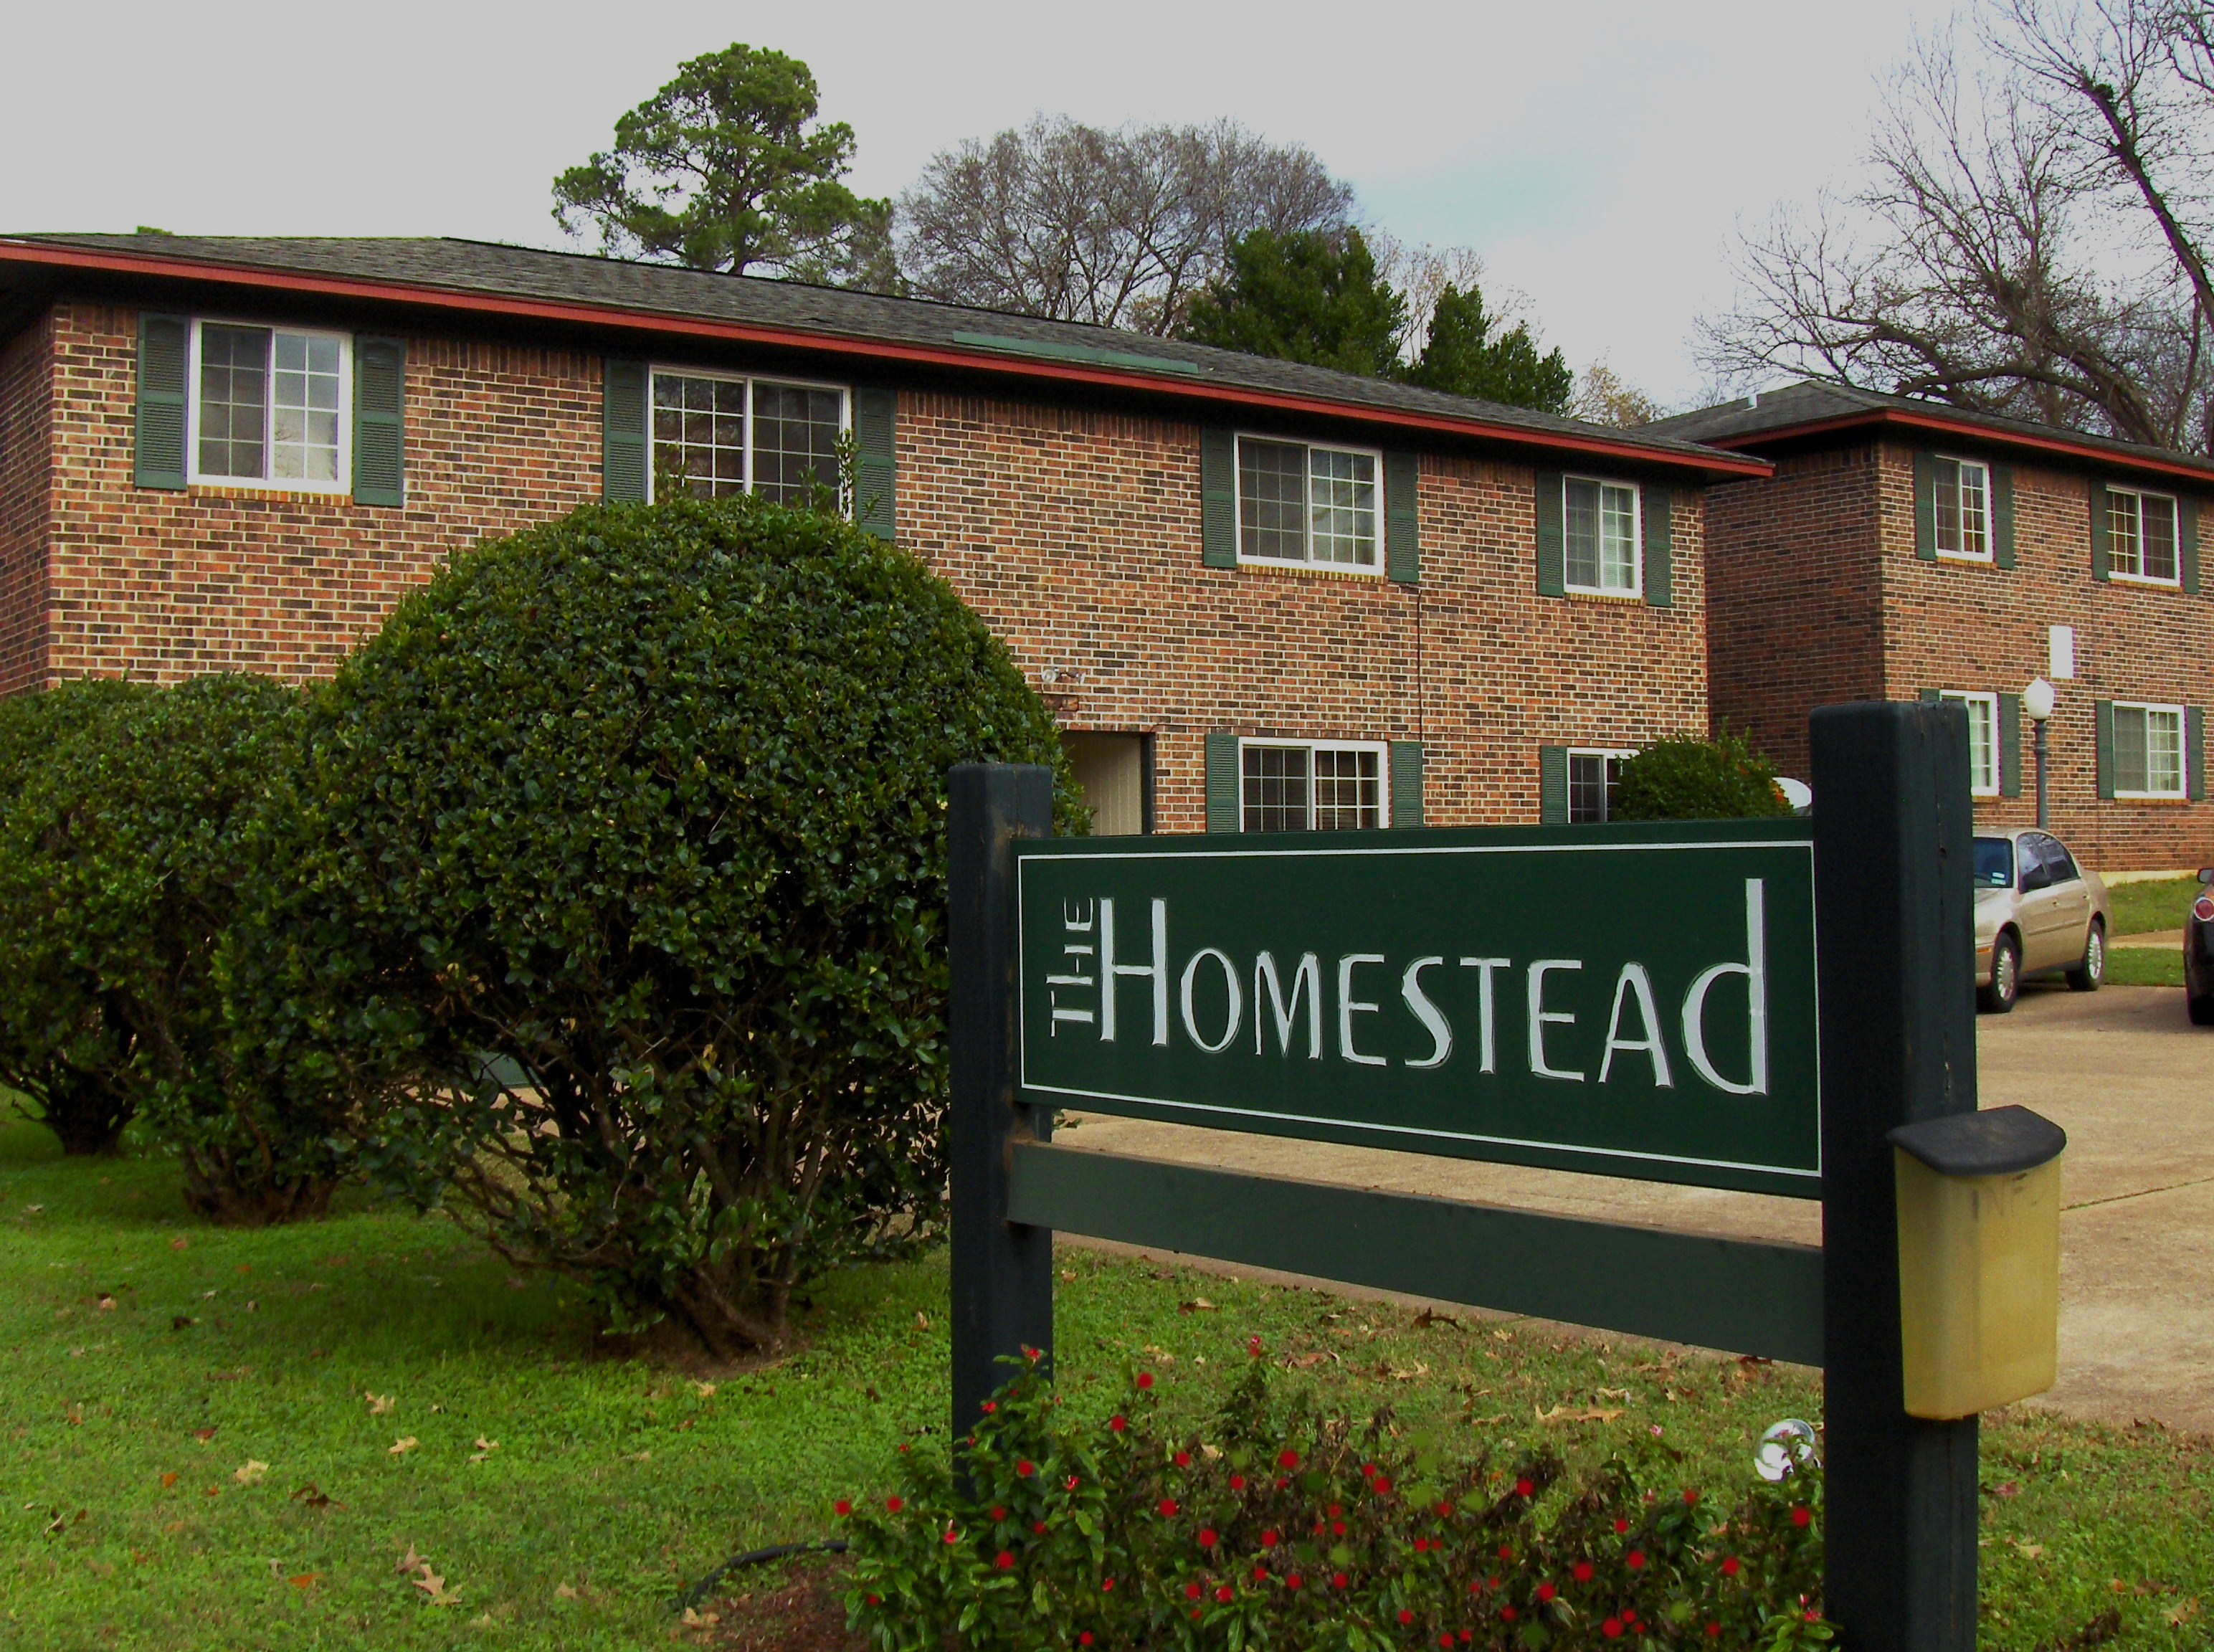 The Homestead Apartments